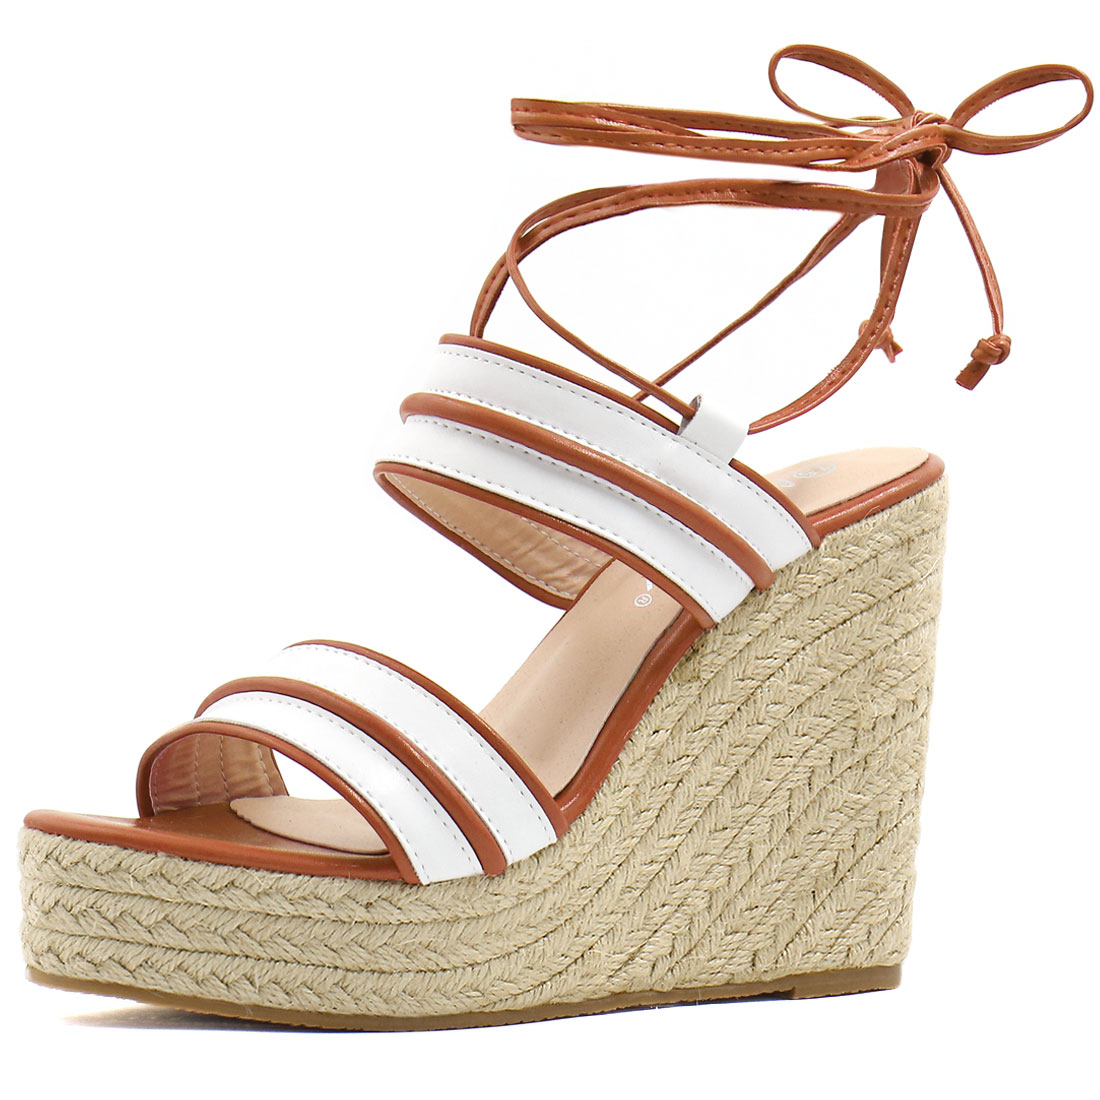 Women Striped Ankle Tie Espadrille Wedge Sandals White Camel US 8.5